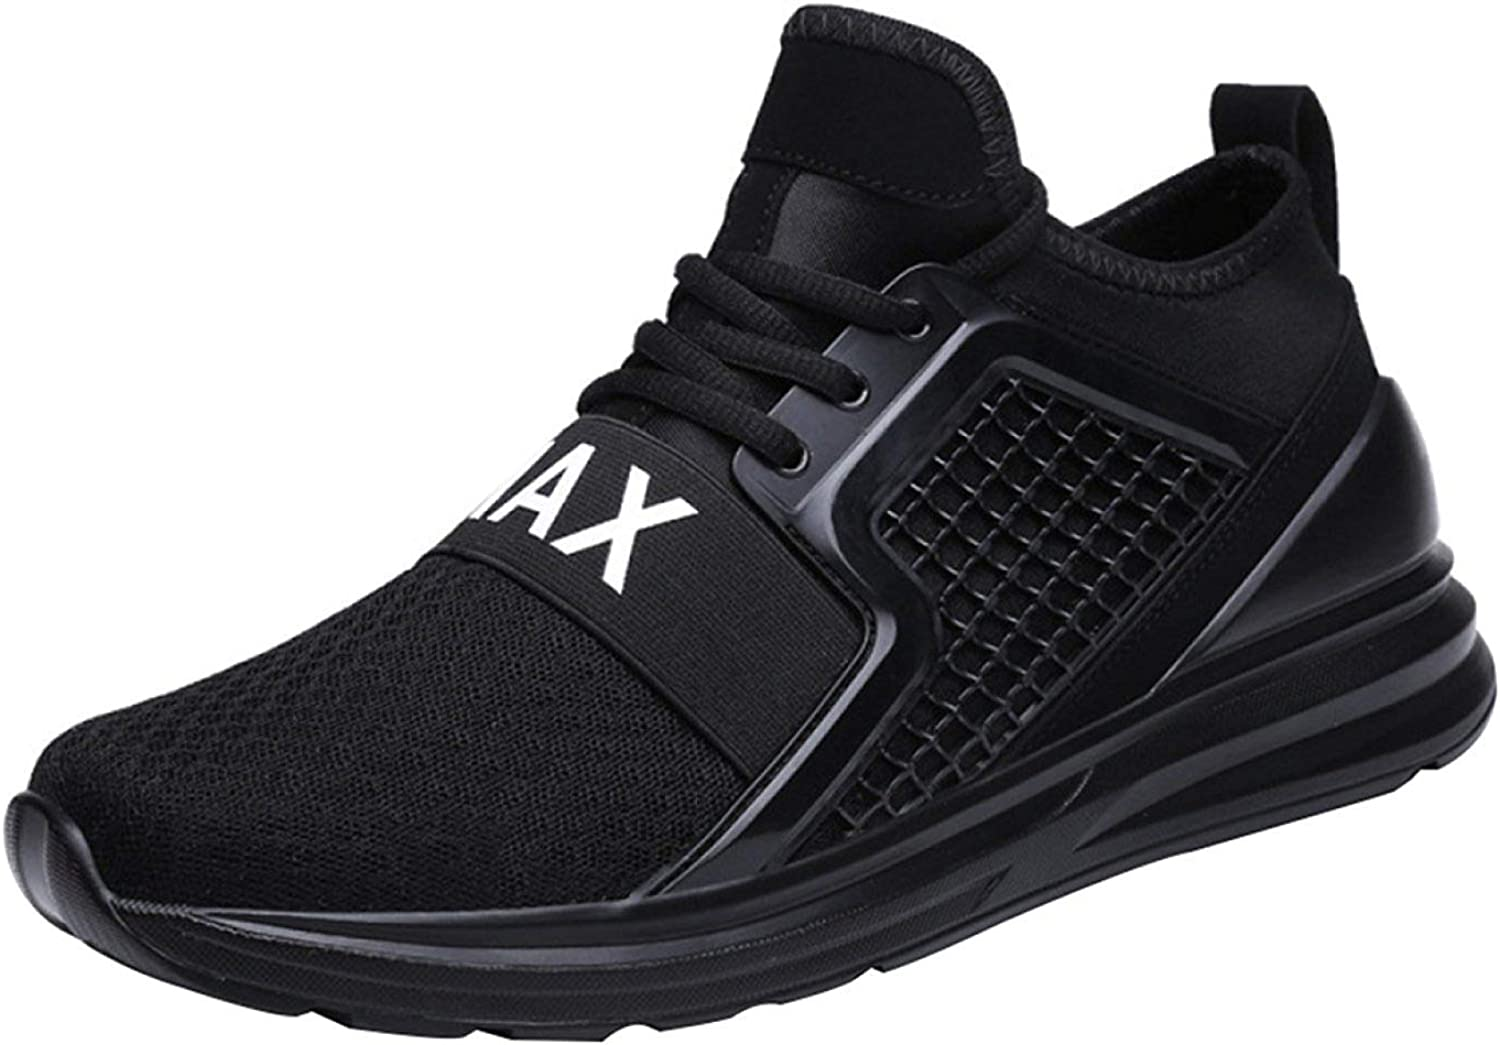 Men's Running shoes Casual Sneakers Breathable Hiking Fashion (color   Black, Size   46EU)